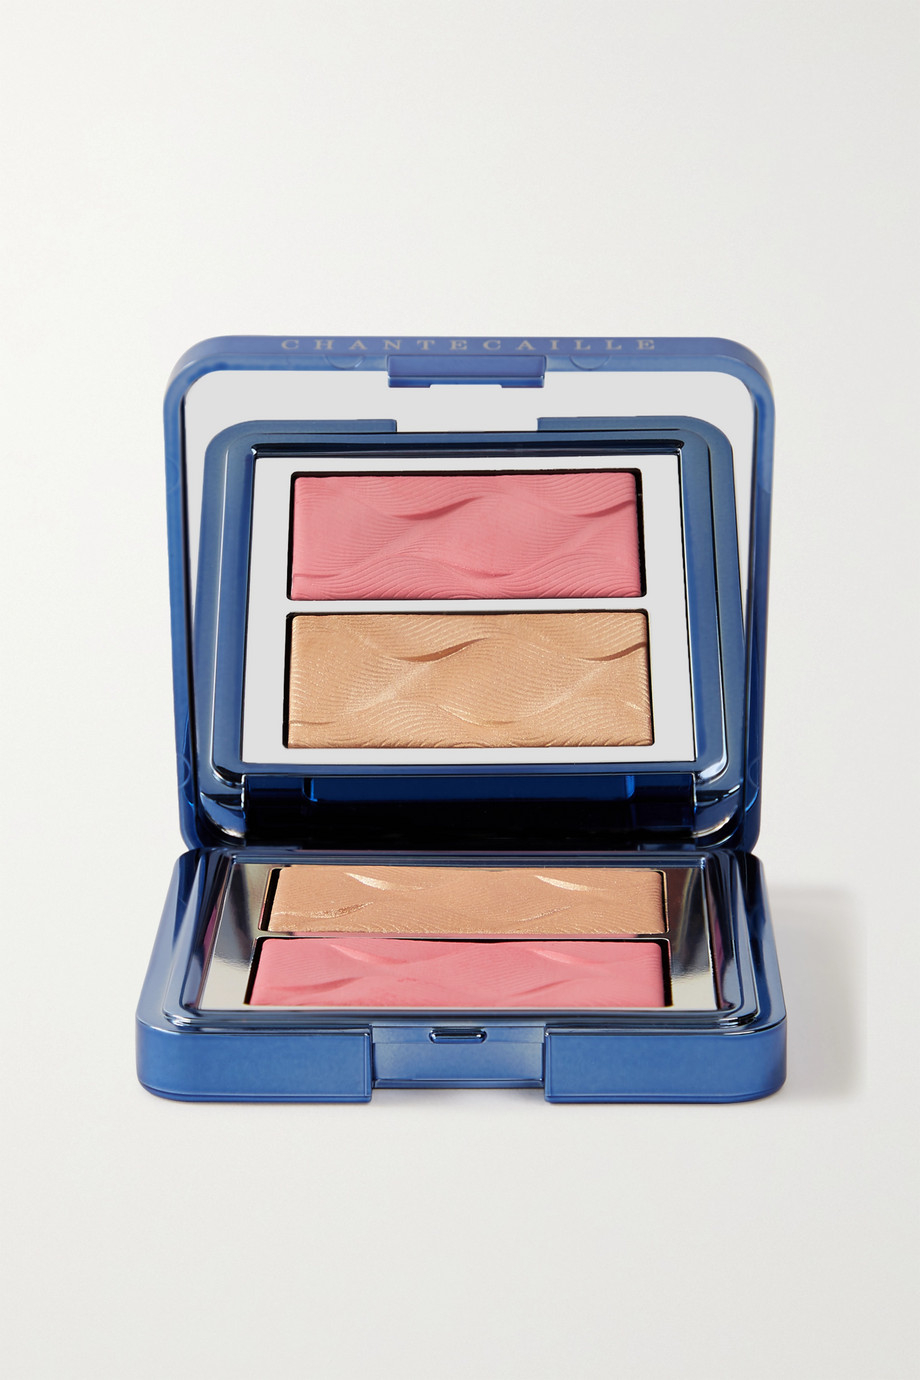 Chantecaille Radiance Chic Cheek and Highlighter Duo – Rose Whale Shark – Rouge und Highlighter